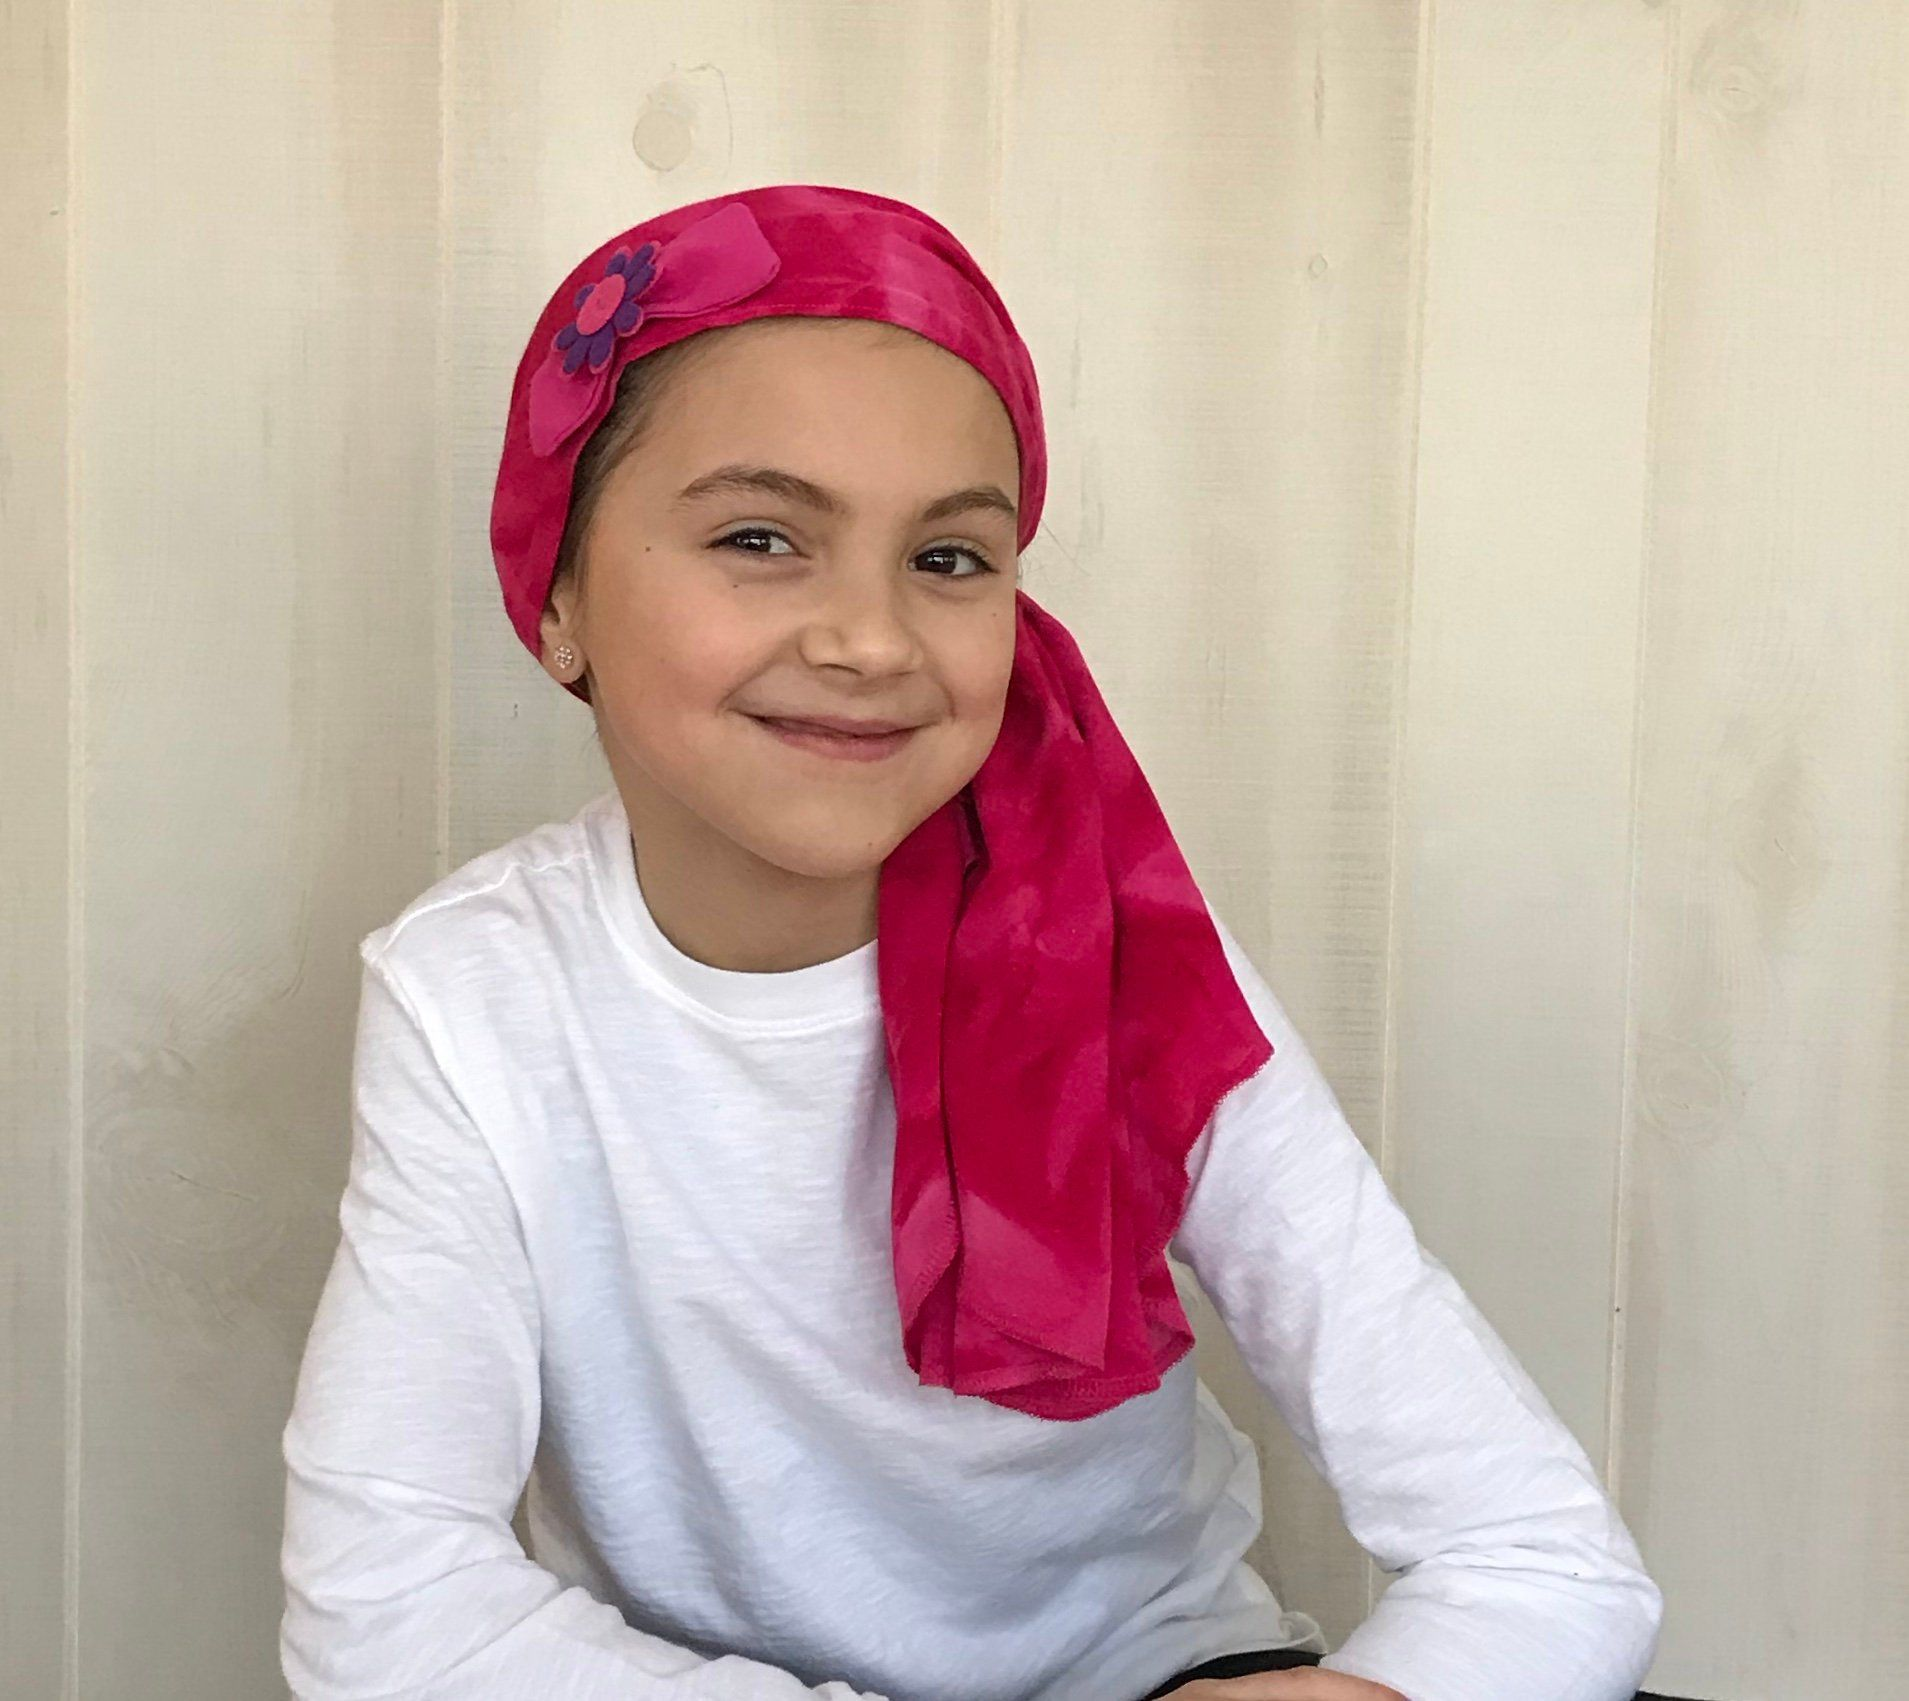 Children's Pre-Tied Head Scarves for children with #hairloss., Girl's #Chemo #Hat, #Cancer #HeadCover, #Alopecia #Headwear, #HeadWrap, #CancerGift, #Pink  #tiedye #pretied #headscarf #avascarf #lovemyIHC #tieheadscarves